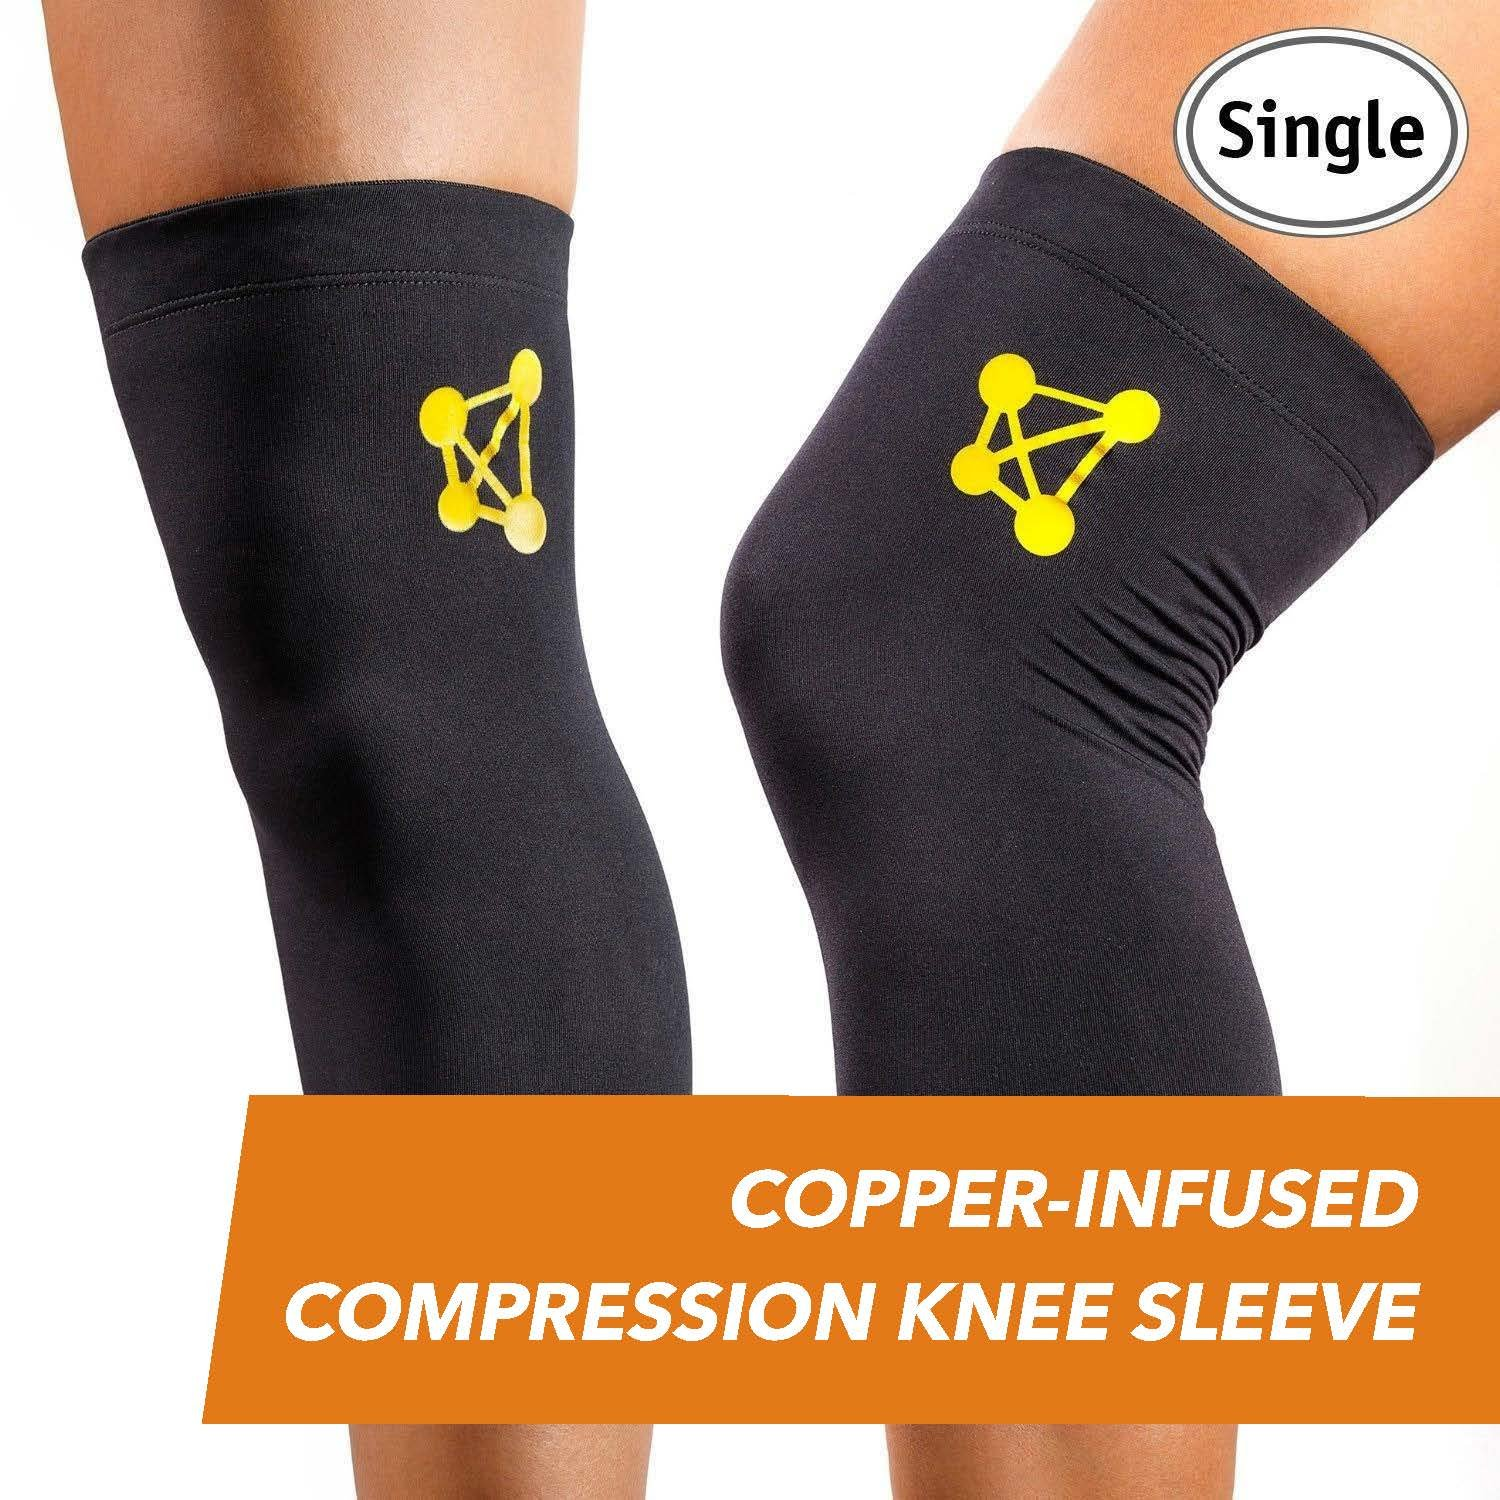 CopperJoint Compression Knee Sleeve (Medium) by CopperJoint